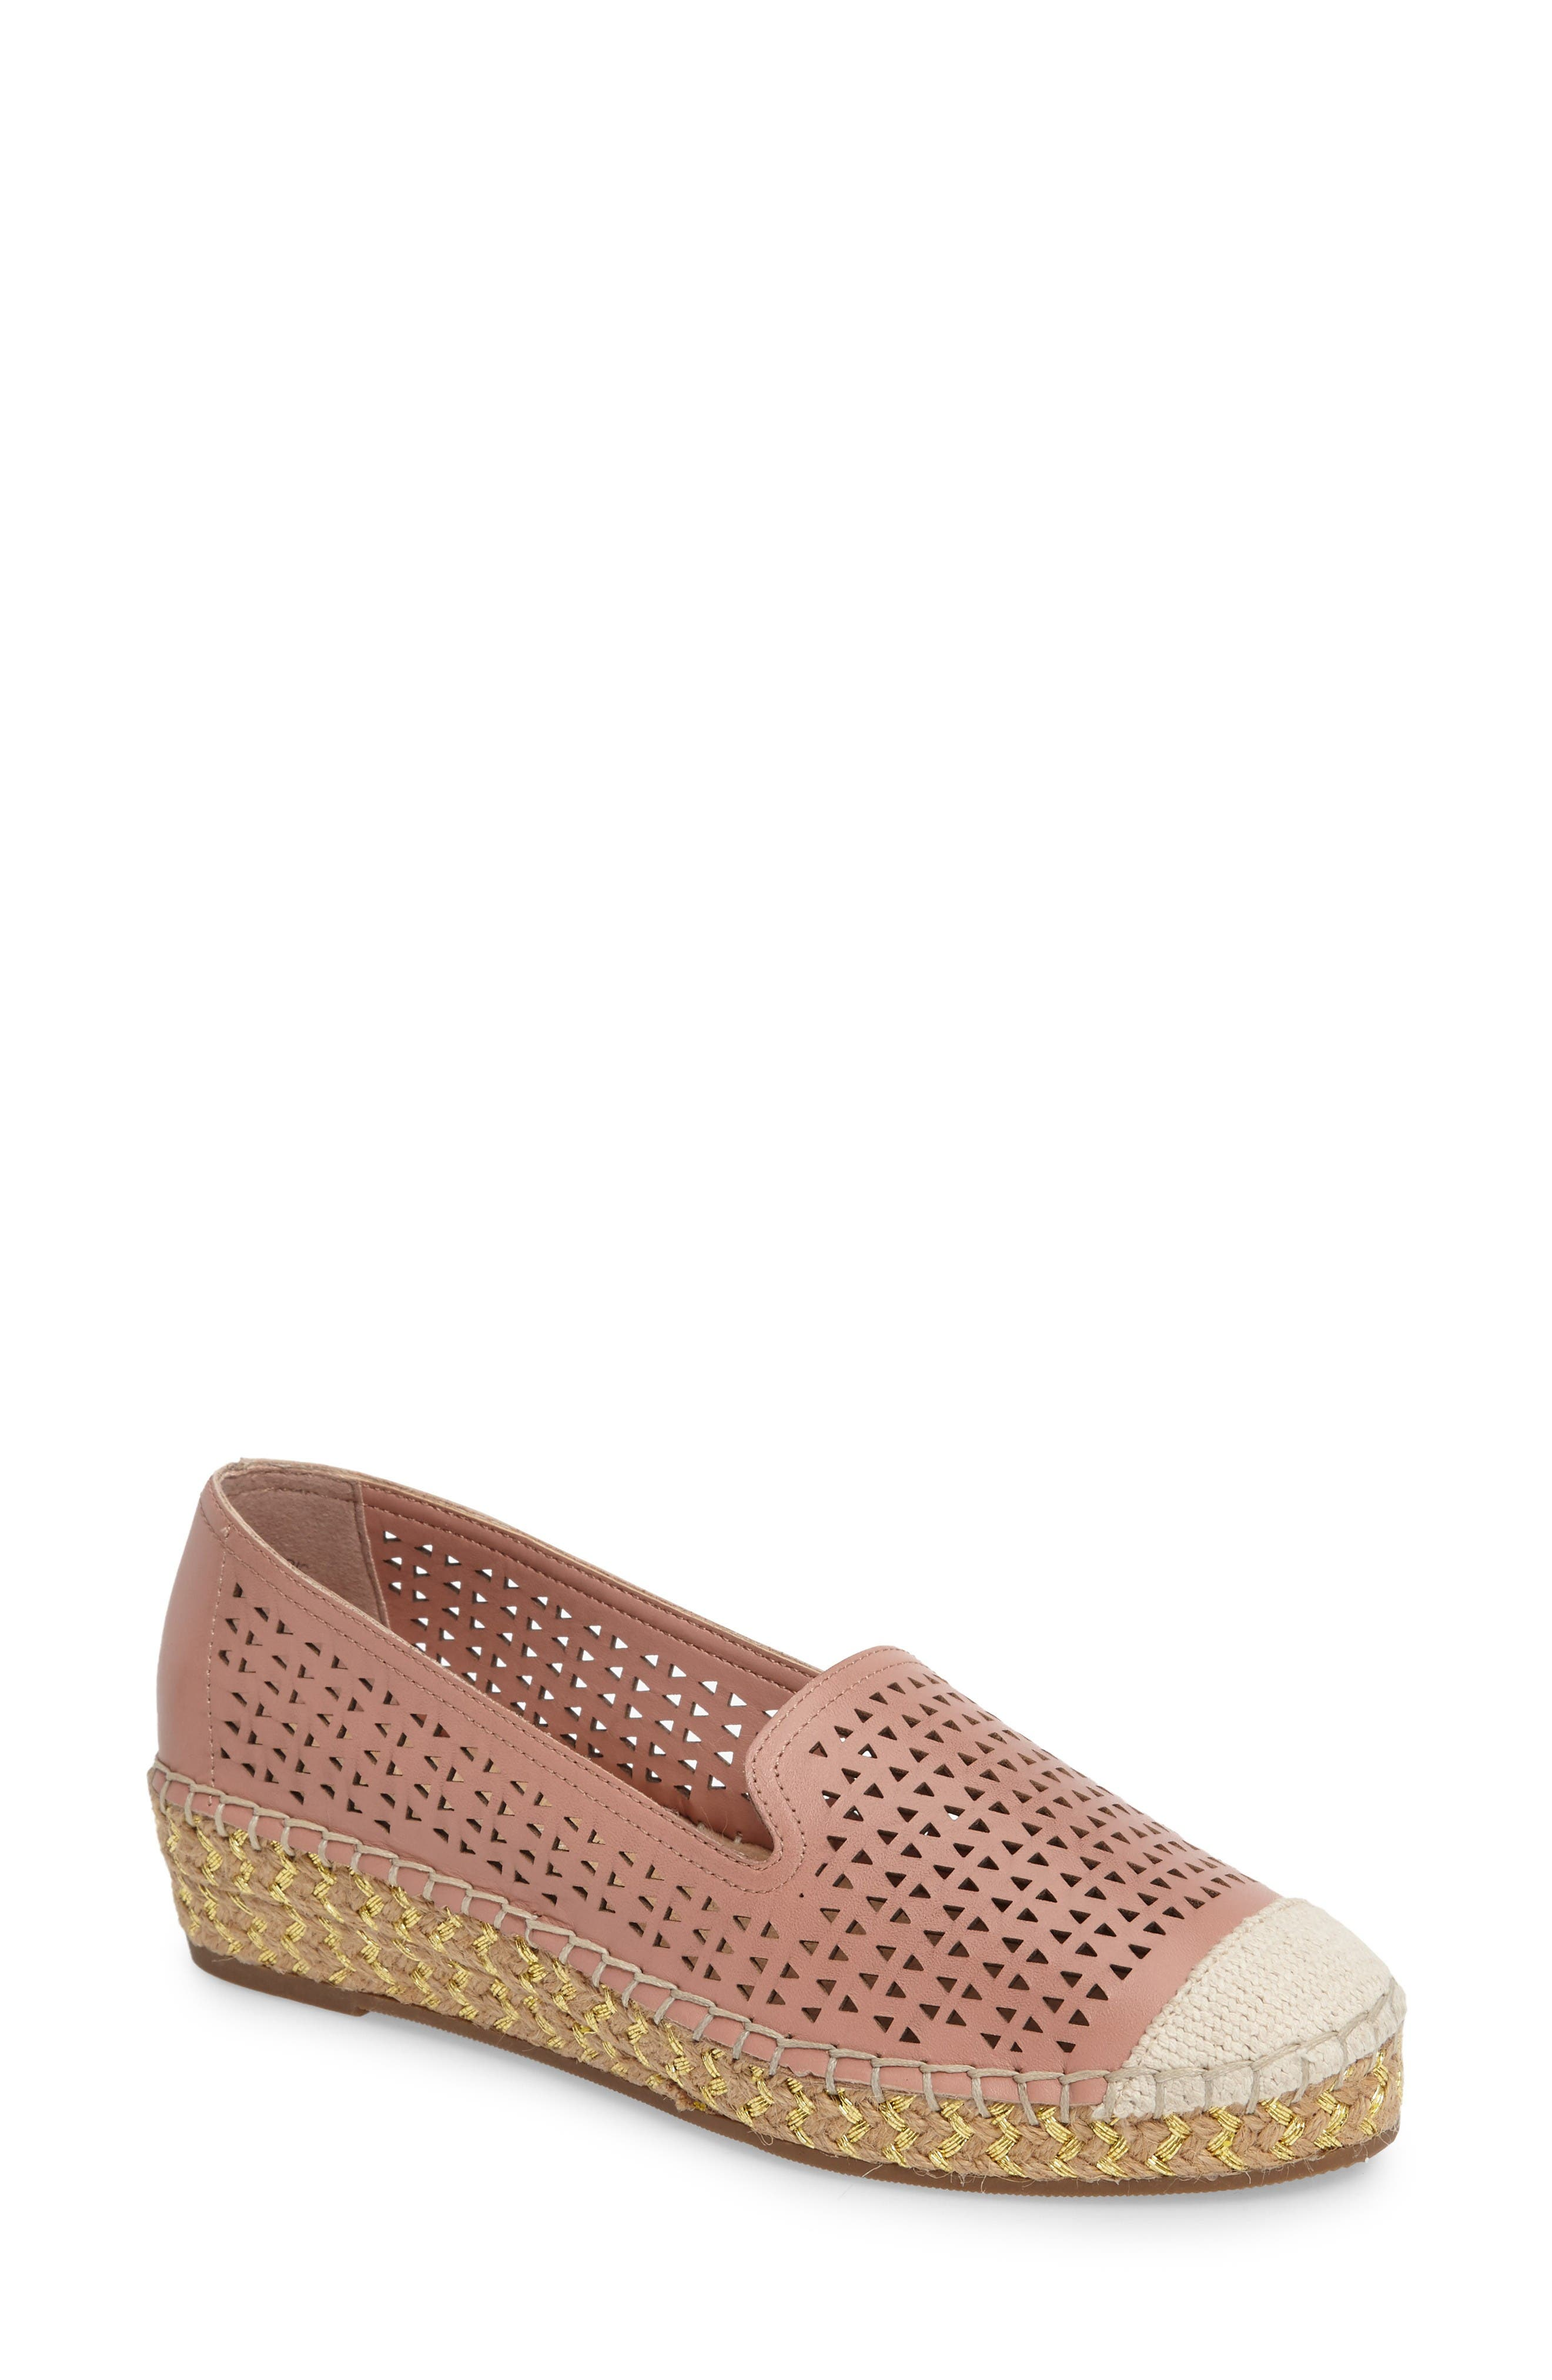 BELLA VITA Channing Cutout Espadrille Loafer